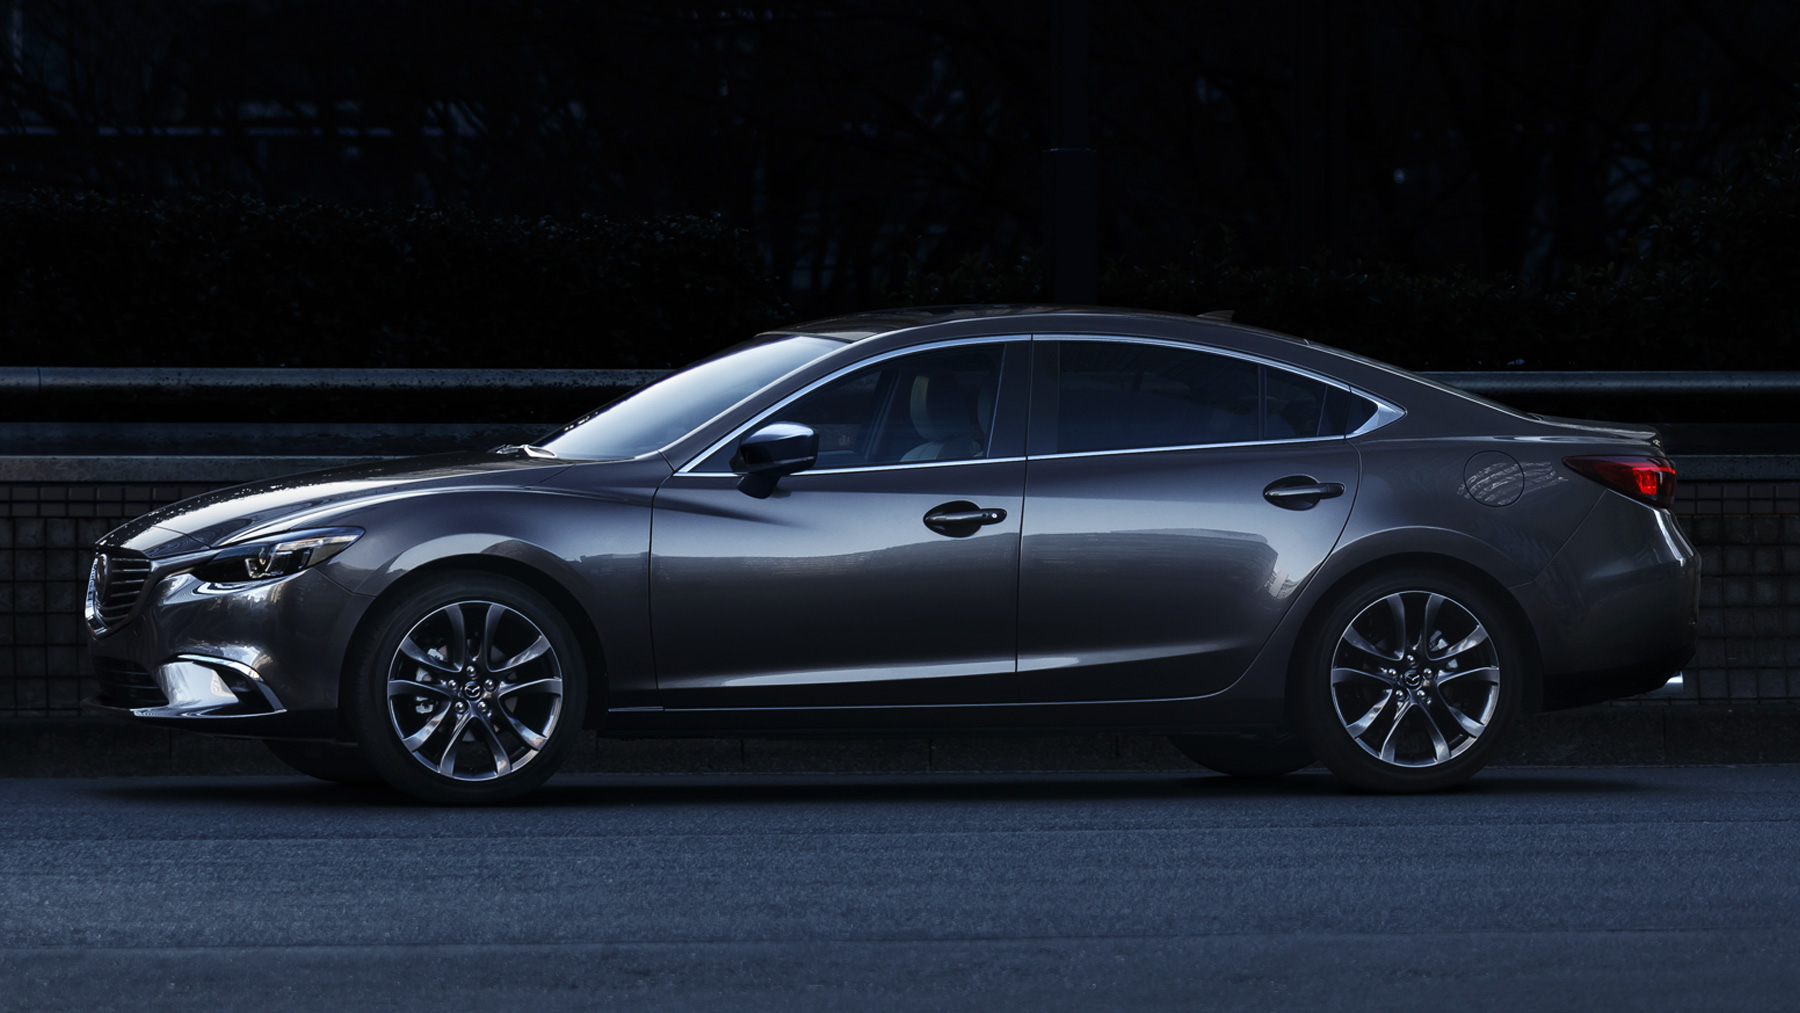 2018 mazda 6 design 2018 cars models for 2018 mazda 6 exterior